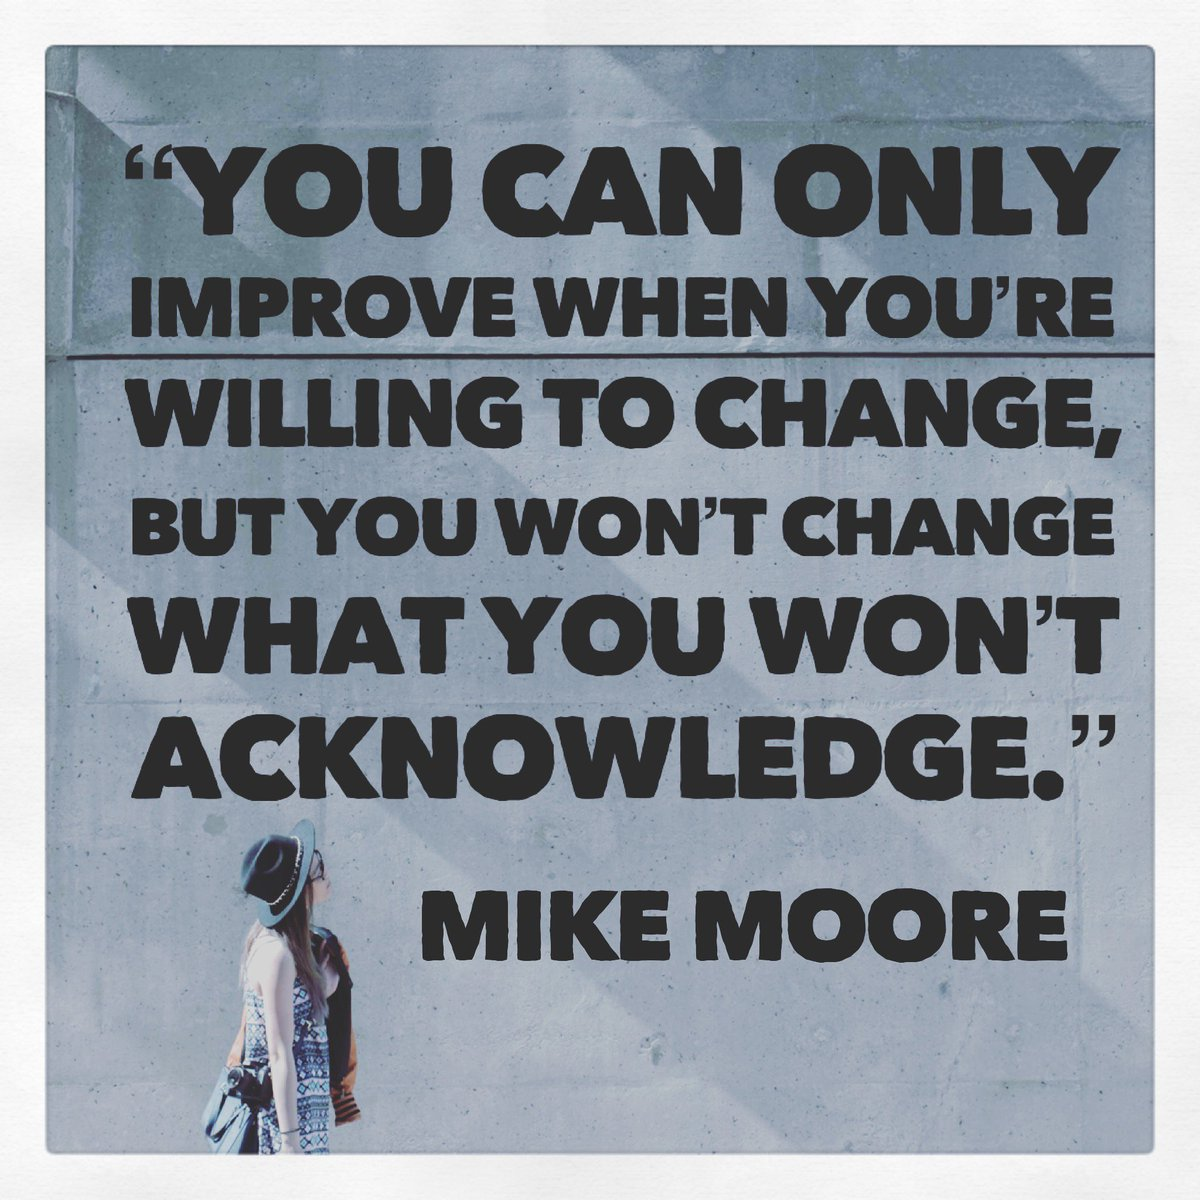 Not all change creates improvement, but all improvement comes from change! #MooreThoughts #Leadership #LeadershipDevelopment #BuildTrust #SalesLeadership #SalesCoaching